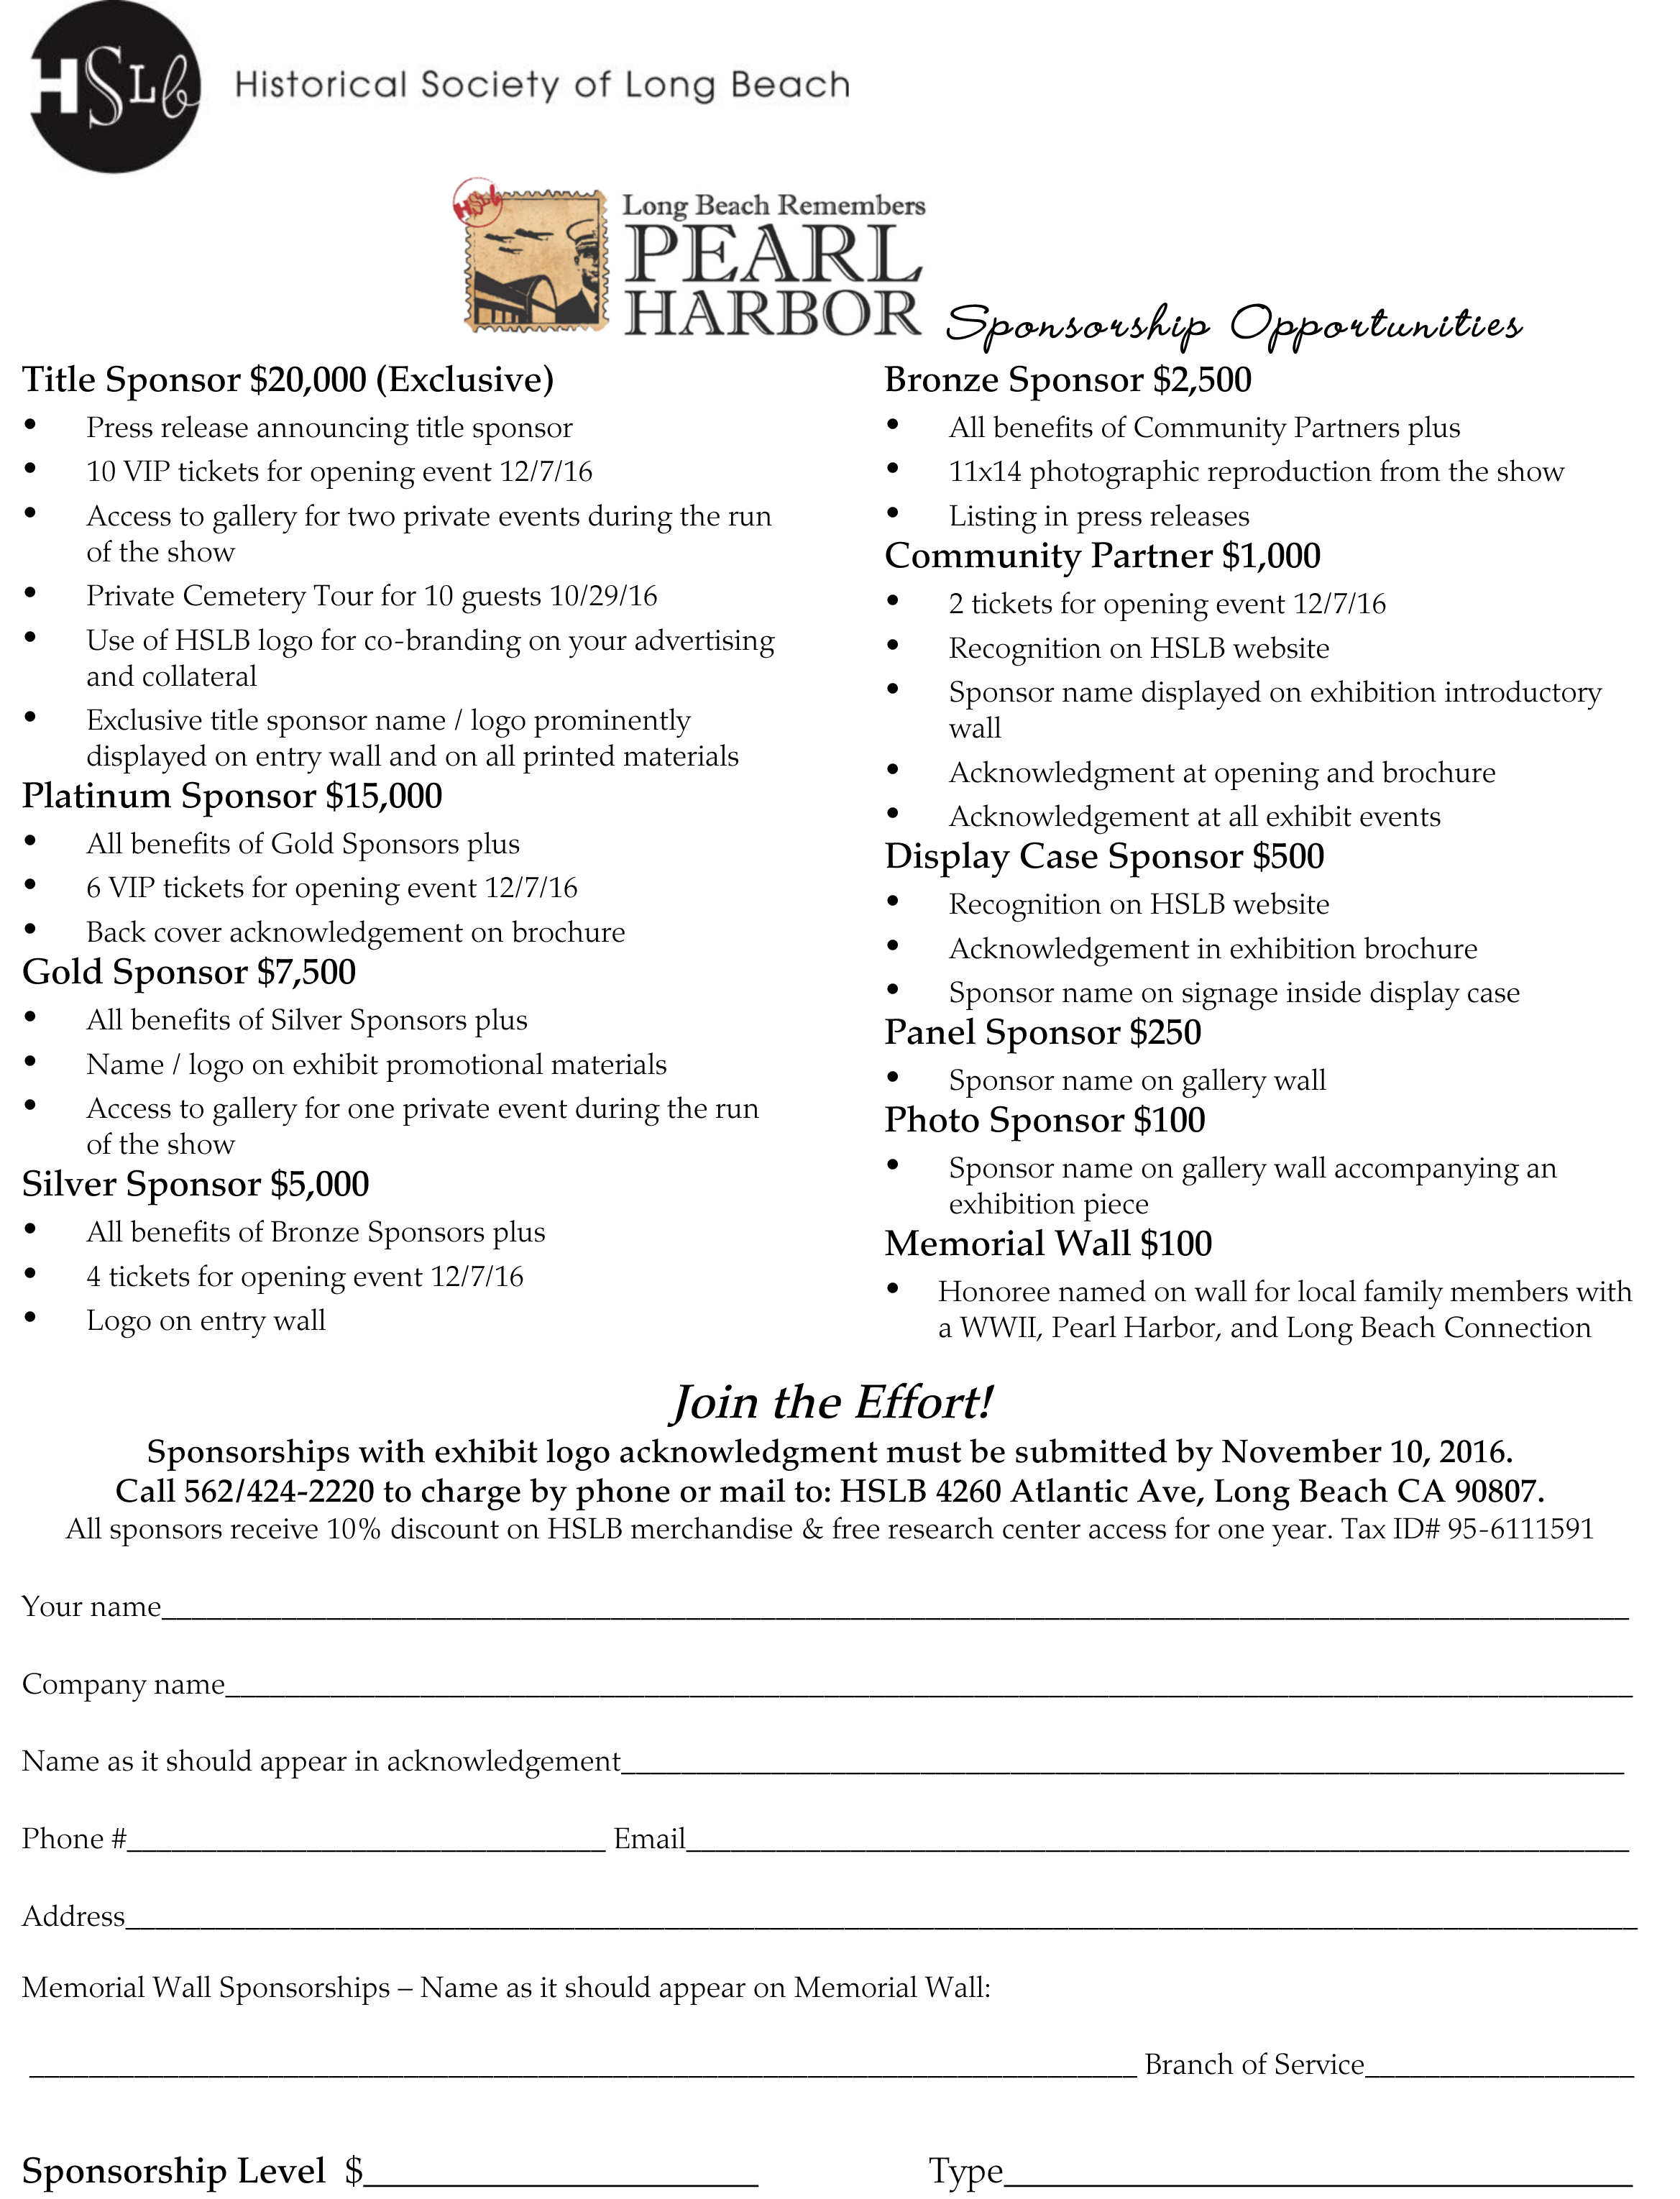 Pearl Harbor Sponsorship Form